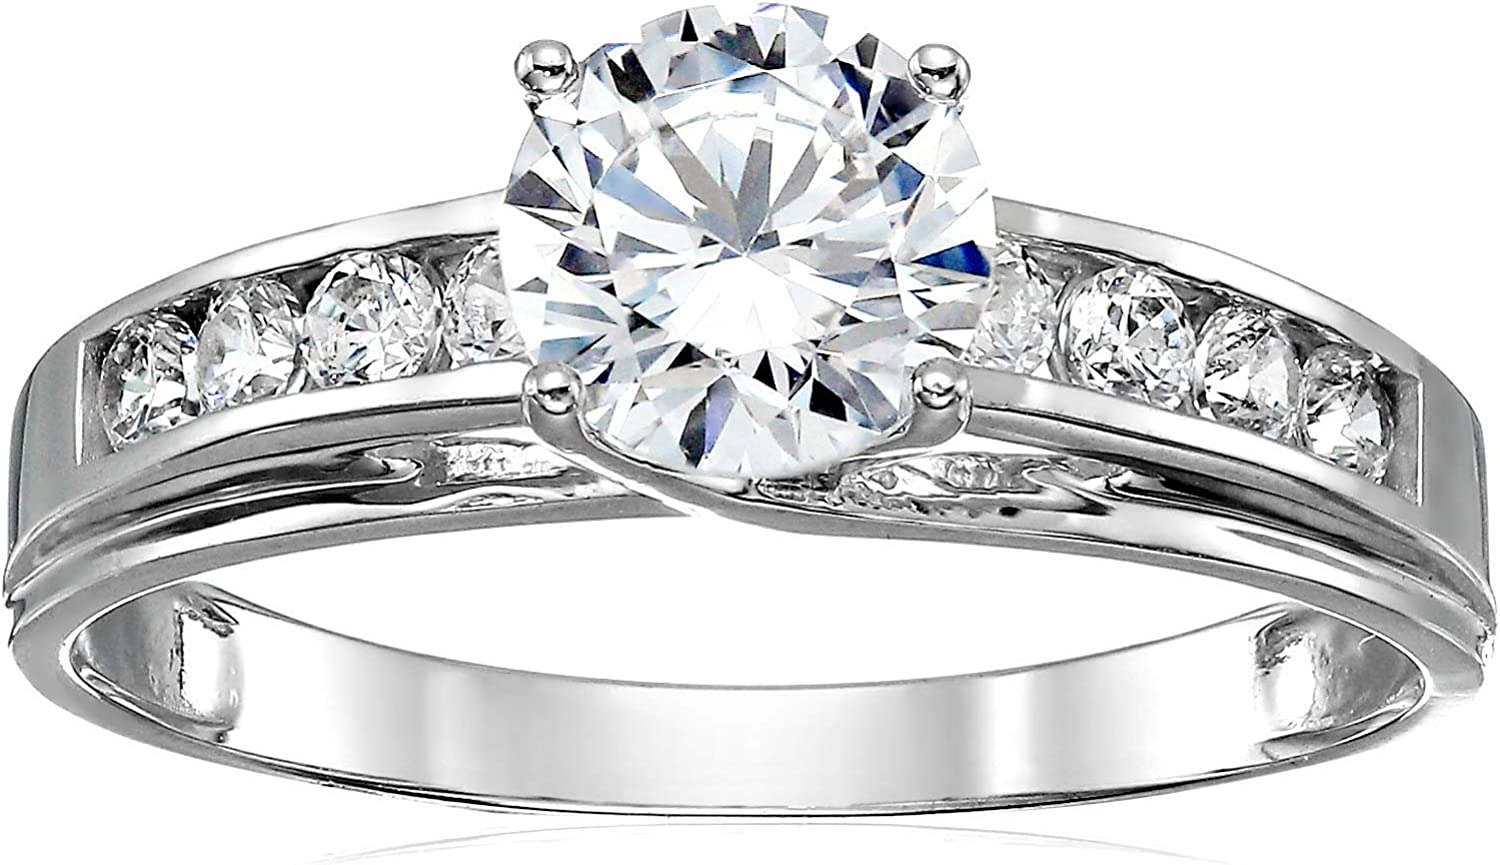 Solid 14k White Gold Solitaire Round Cz Cubic Zirconia Engagement Ring 1 5ct Amazon Com